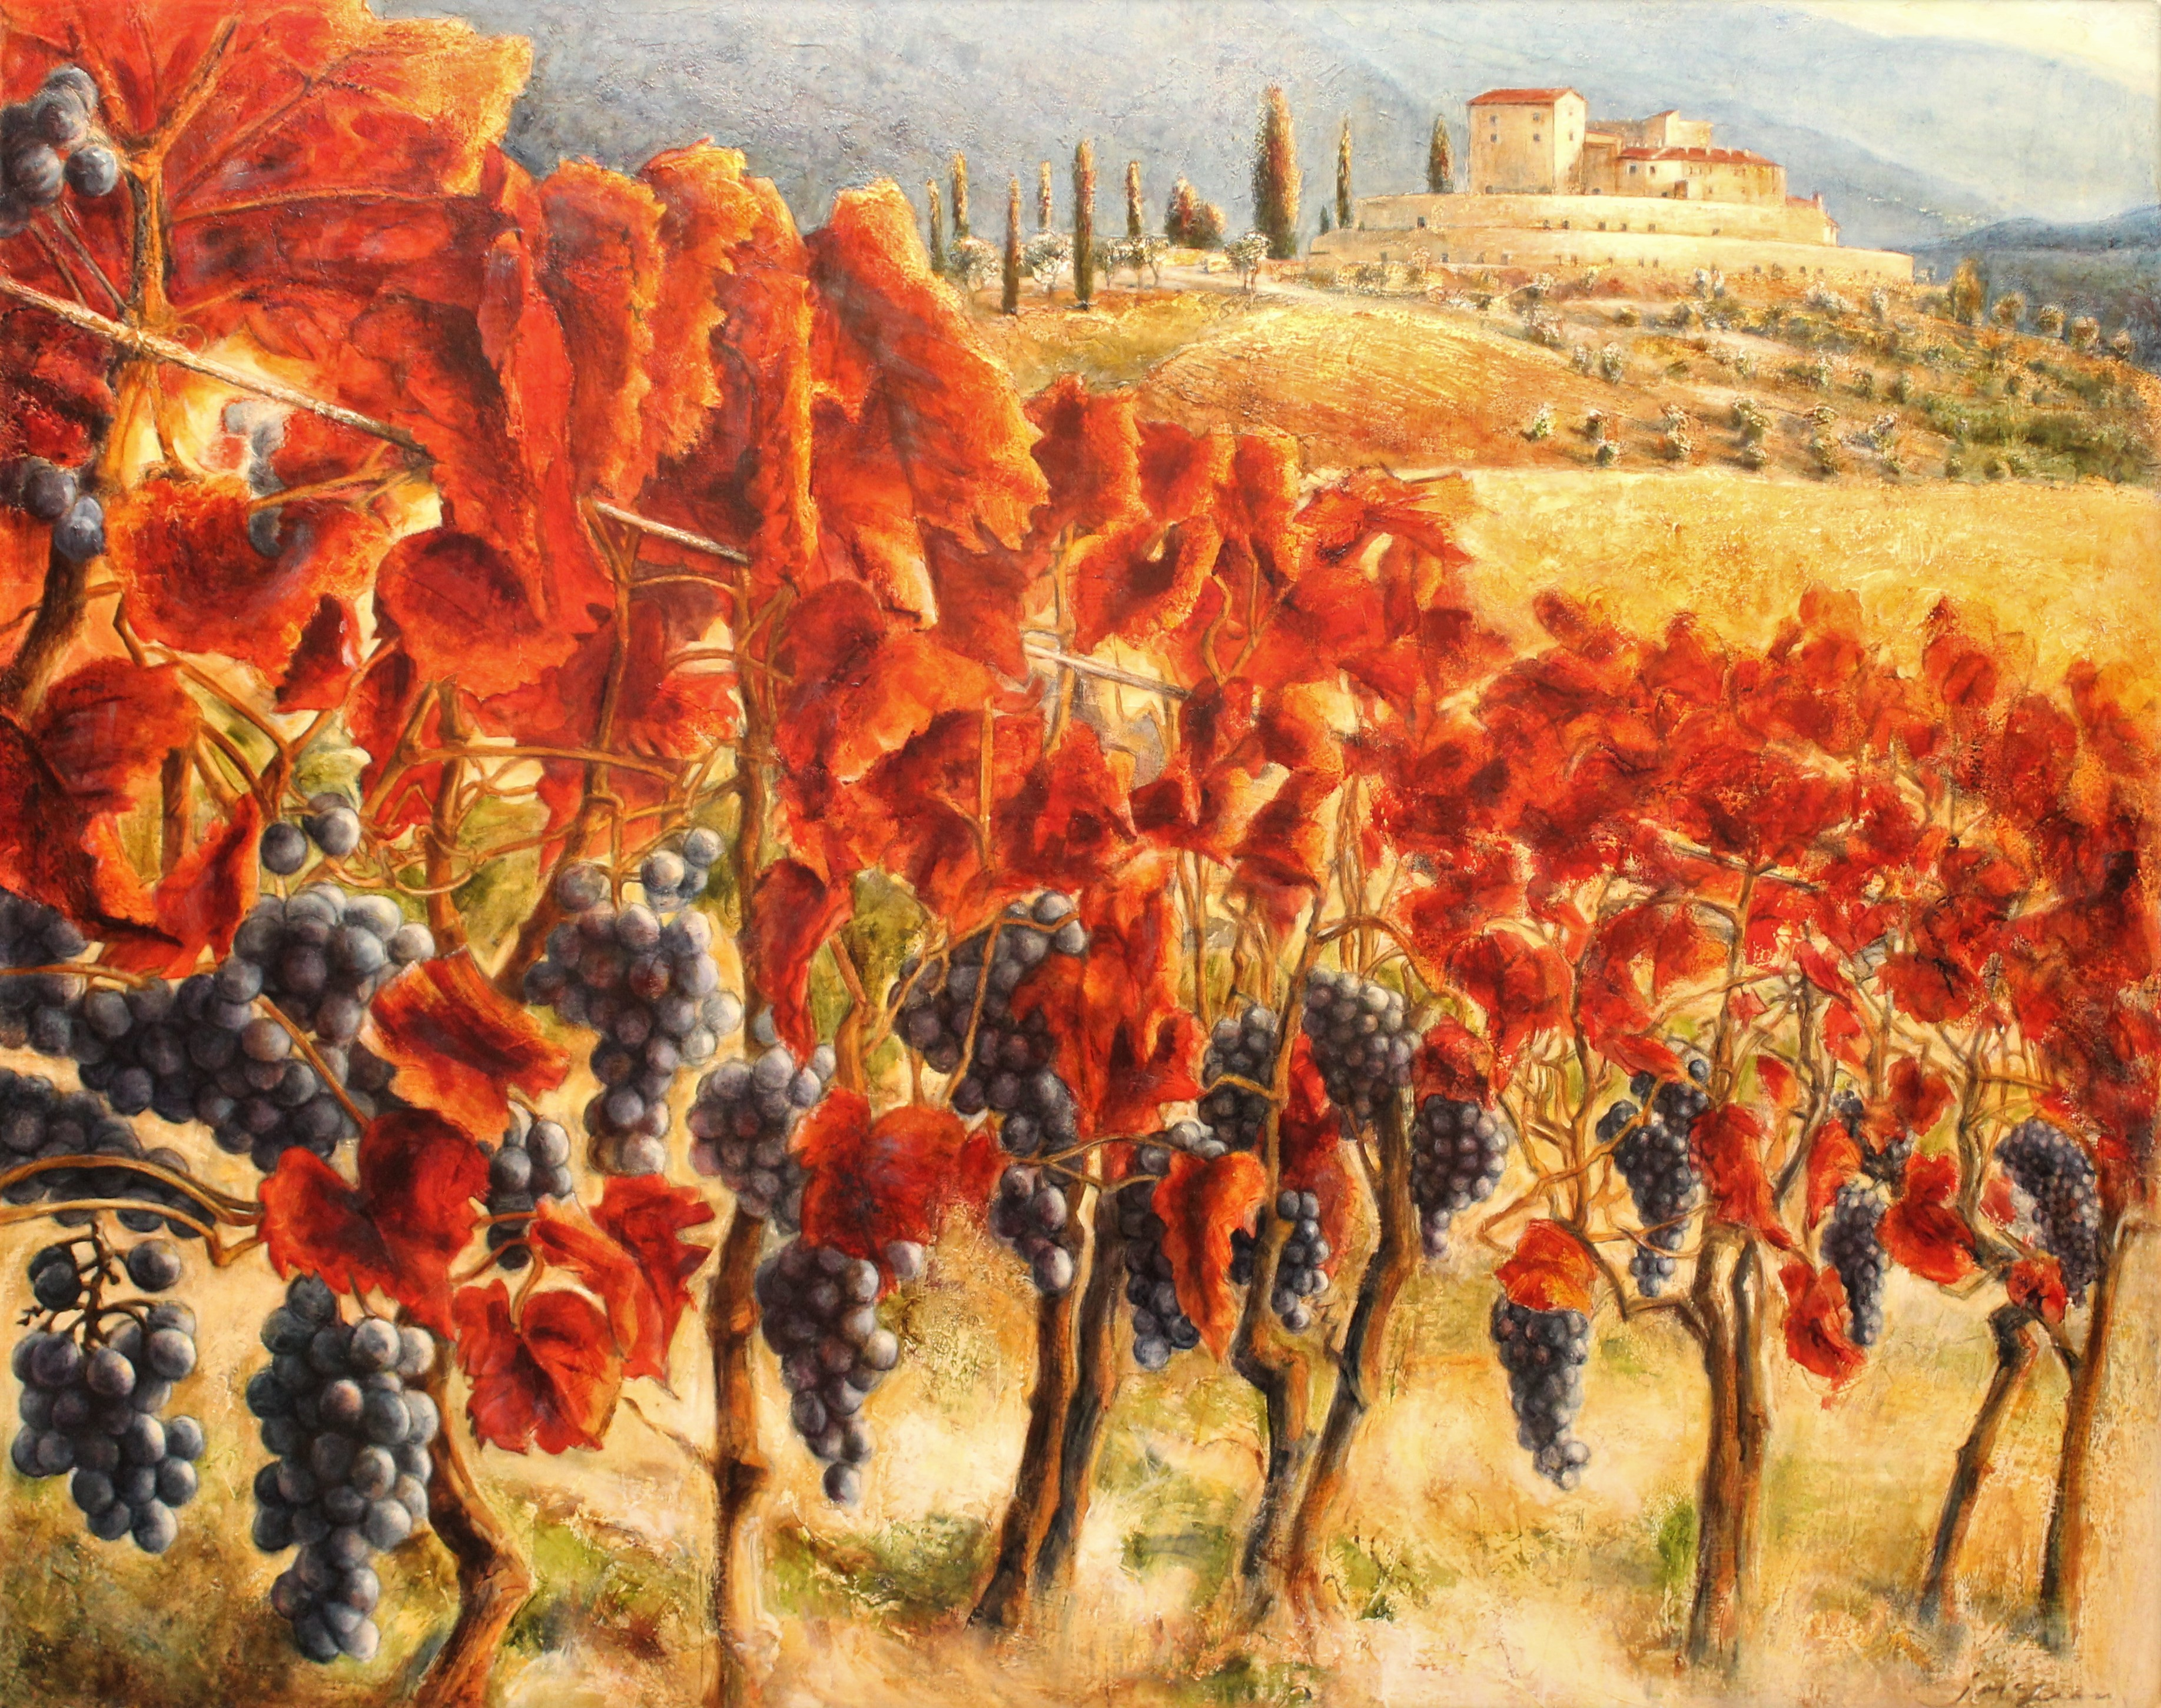 Montalcino Val Di Orcia Mixed Media Painting 48x60 by Contemporary Canadian Painter Janice Mclean